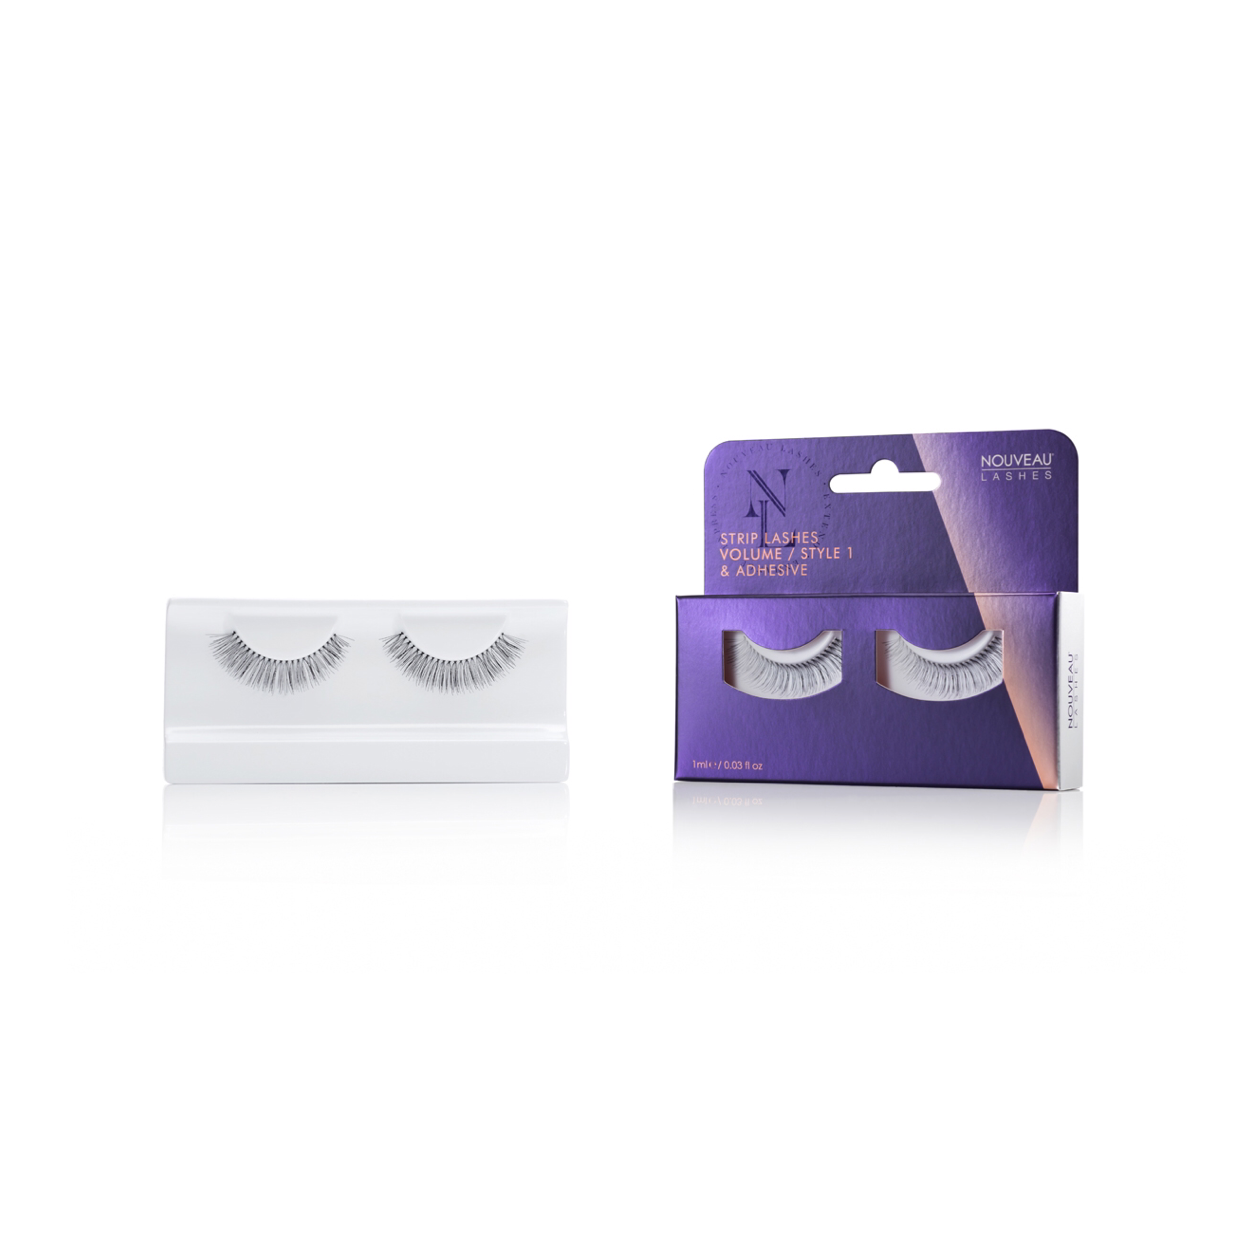 Nouveau Strip Lashes Volume Style 1